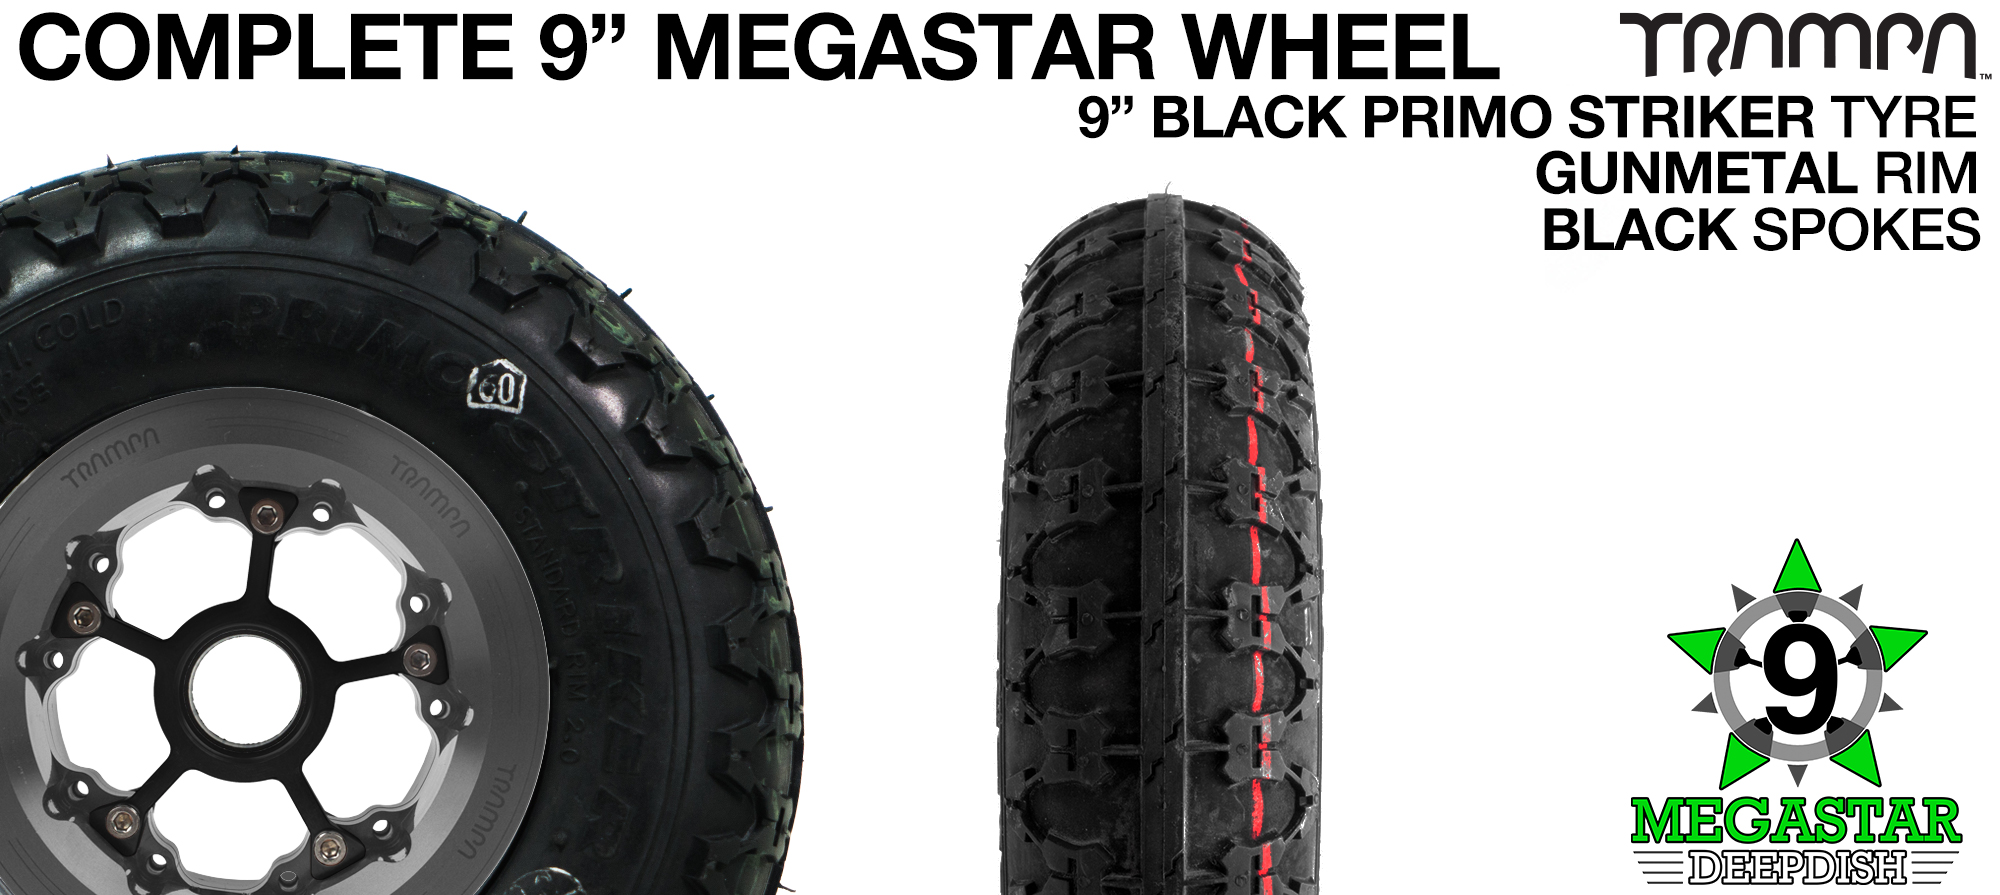 GUNMETAL 9 inch Deep-Dish MEGASTARS Rim with BLACK Spokes & 9 Inch STRIKER Tyre